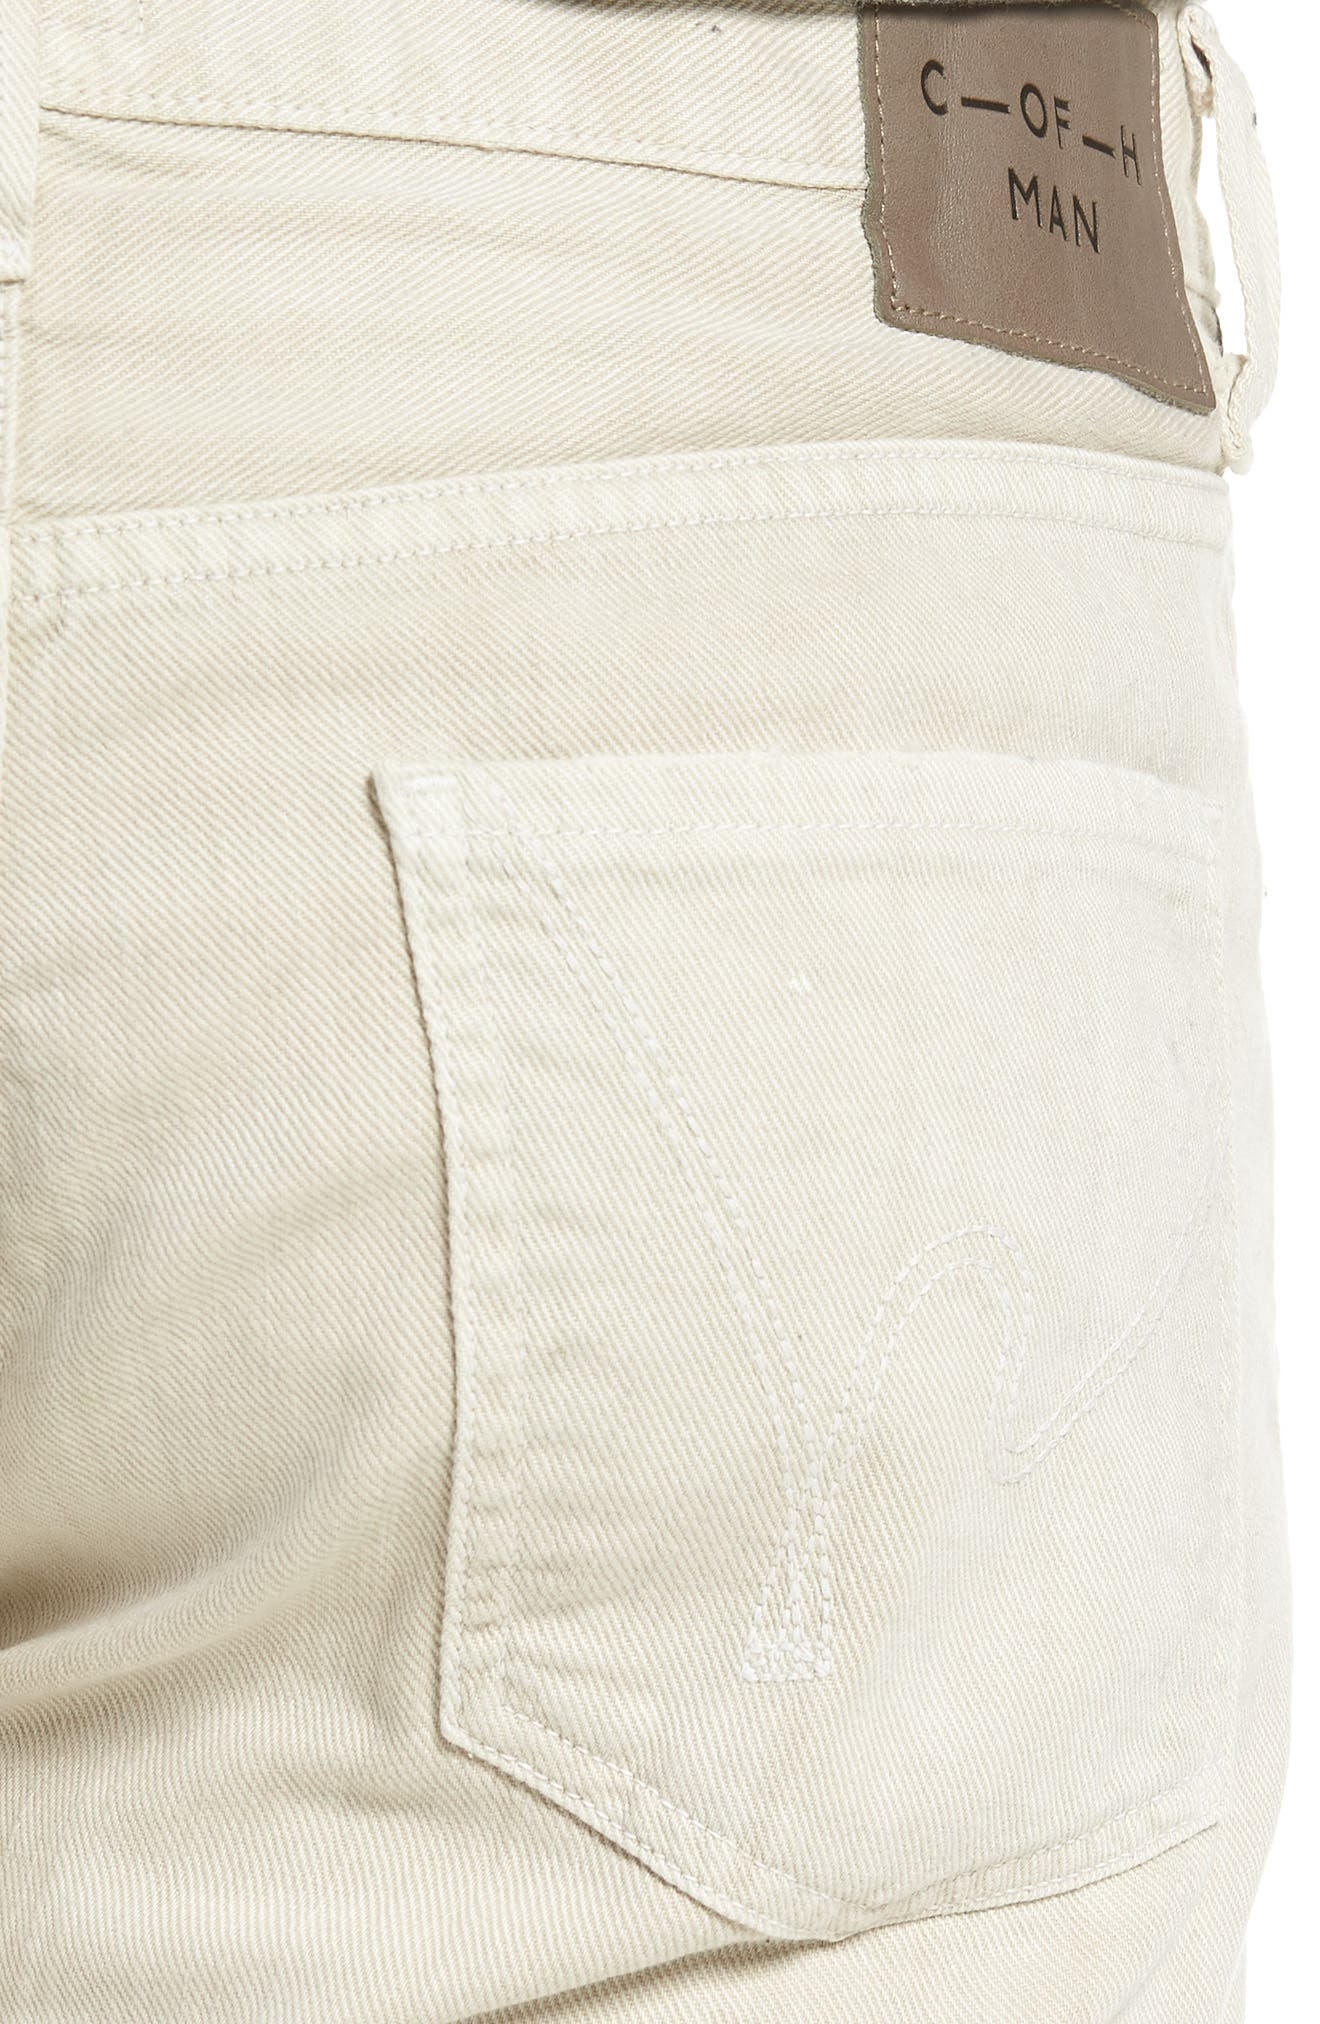 CITIZENS OF HUMANITY,                             Sid Straight Leg Jeans,                             Alternate thumbnail 4, color,                             MODA